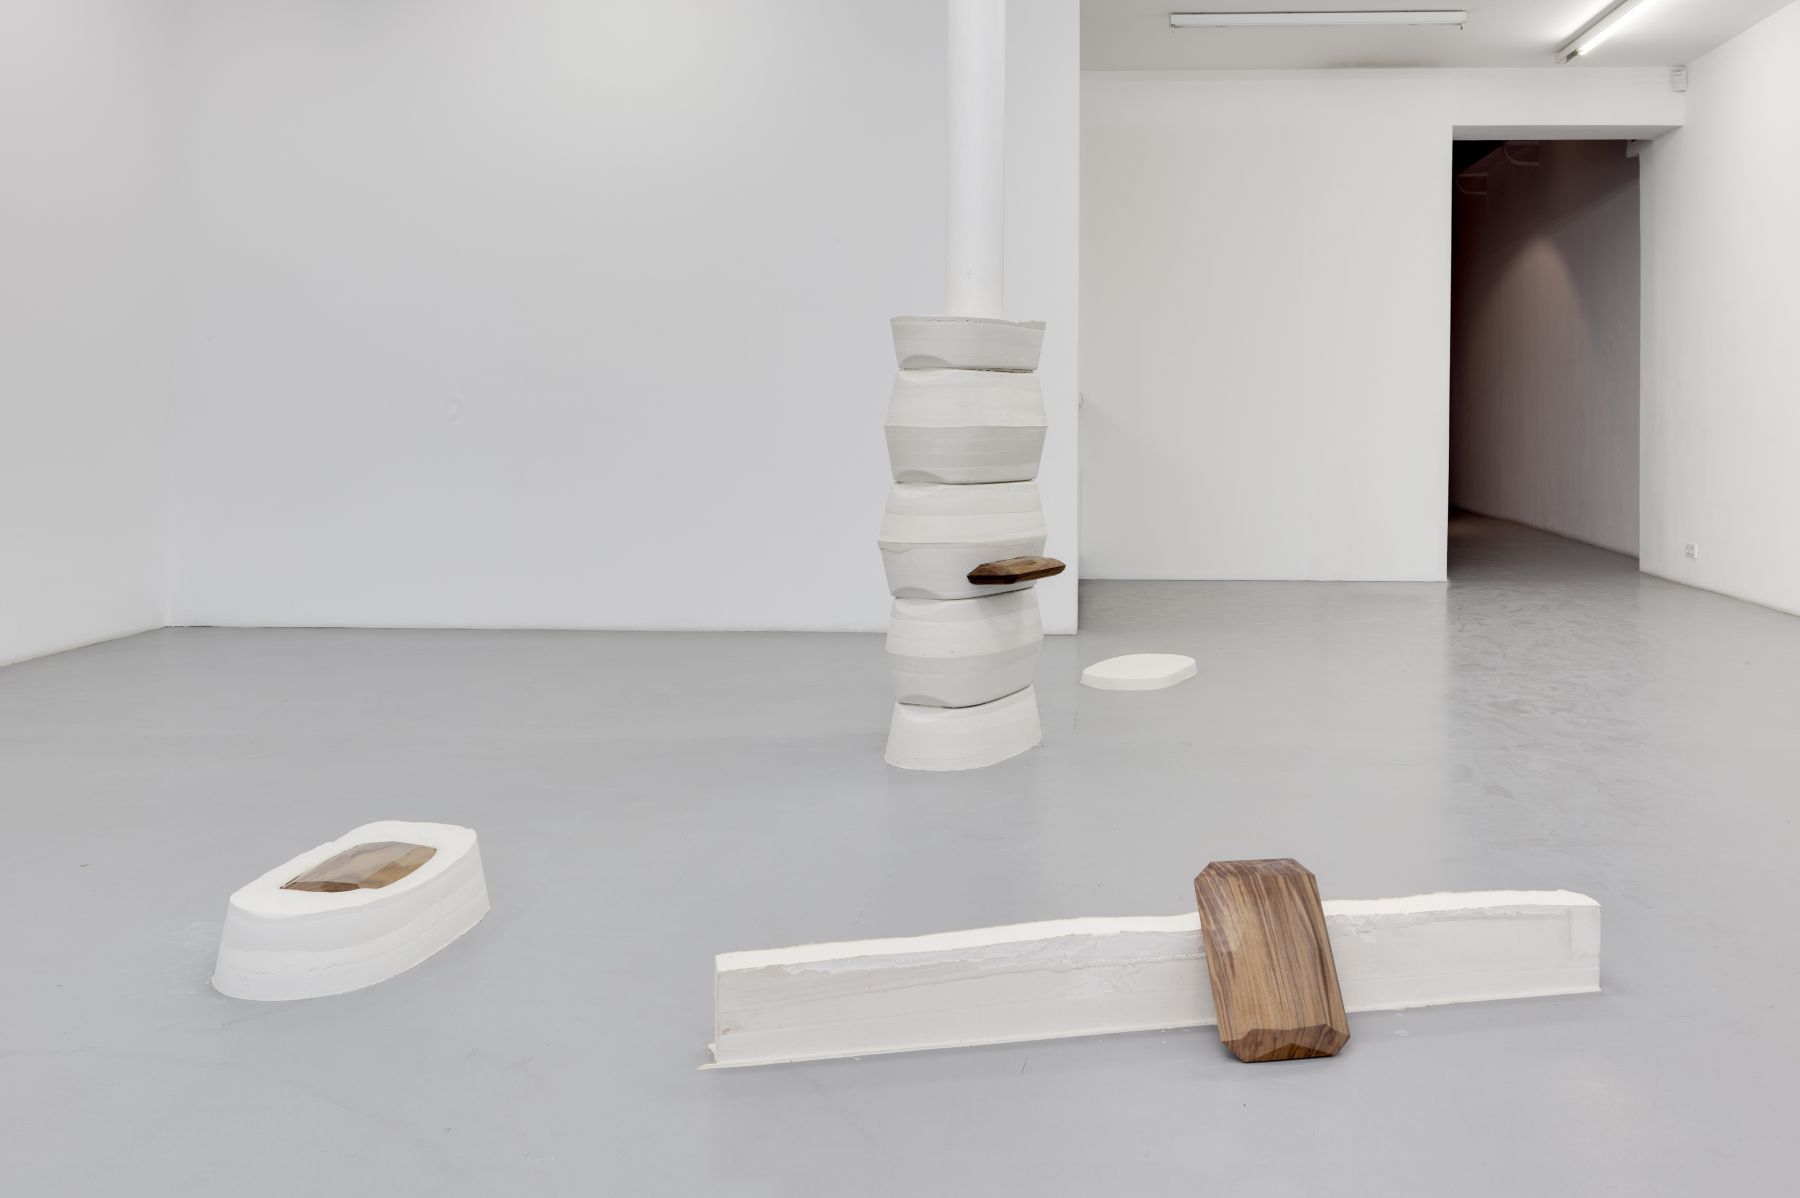 Lucy Skaer: Blanks and Ballast– installation view 6